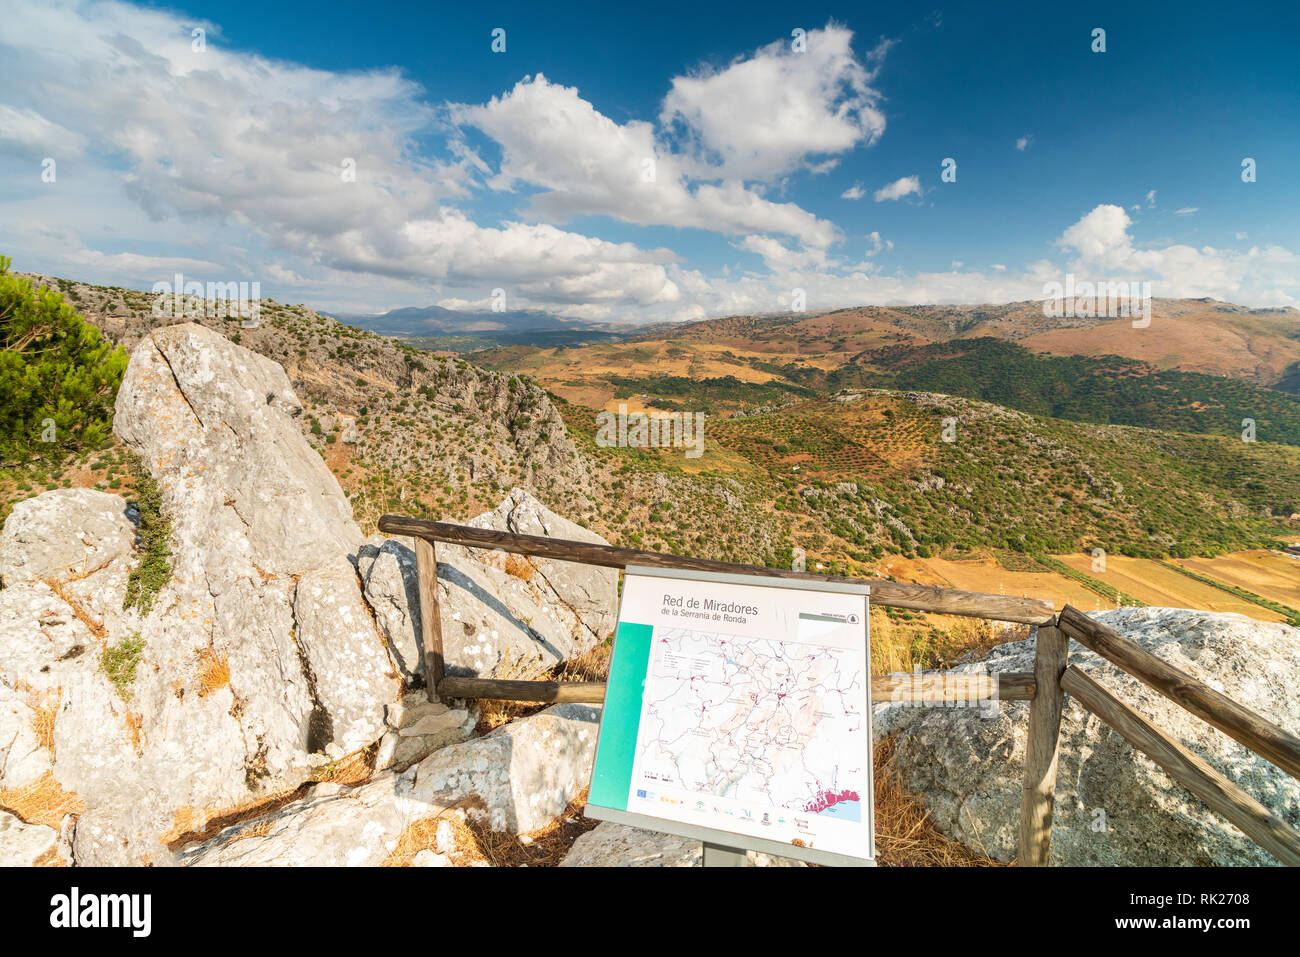 Mirador and hiking signboard in Sierra de Grazalema National Park surrounded by mountains, Serrania de Ronda, Malaga province, Andalusia, Spain - Stock Image